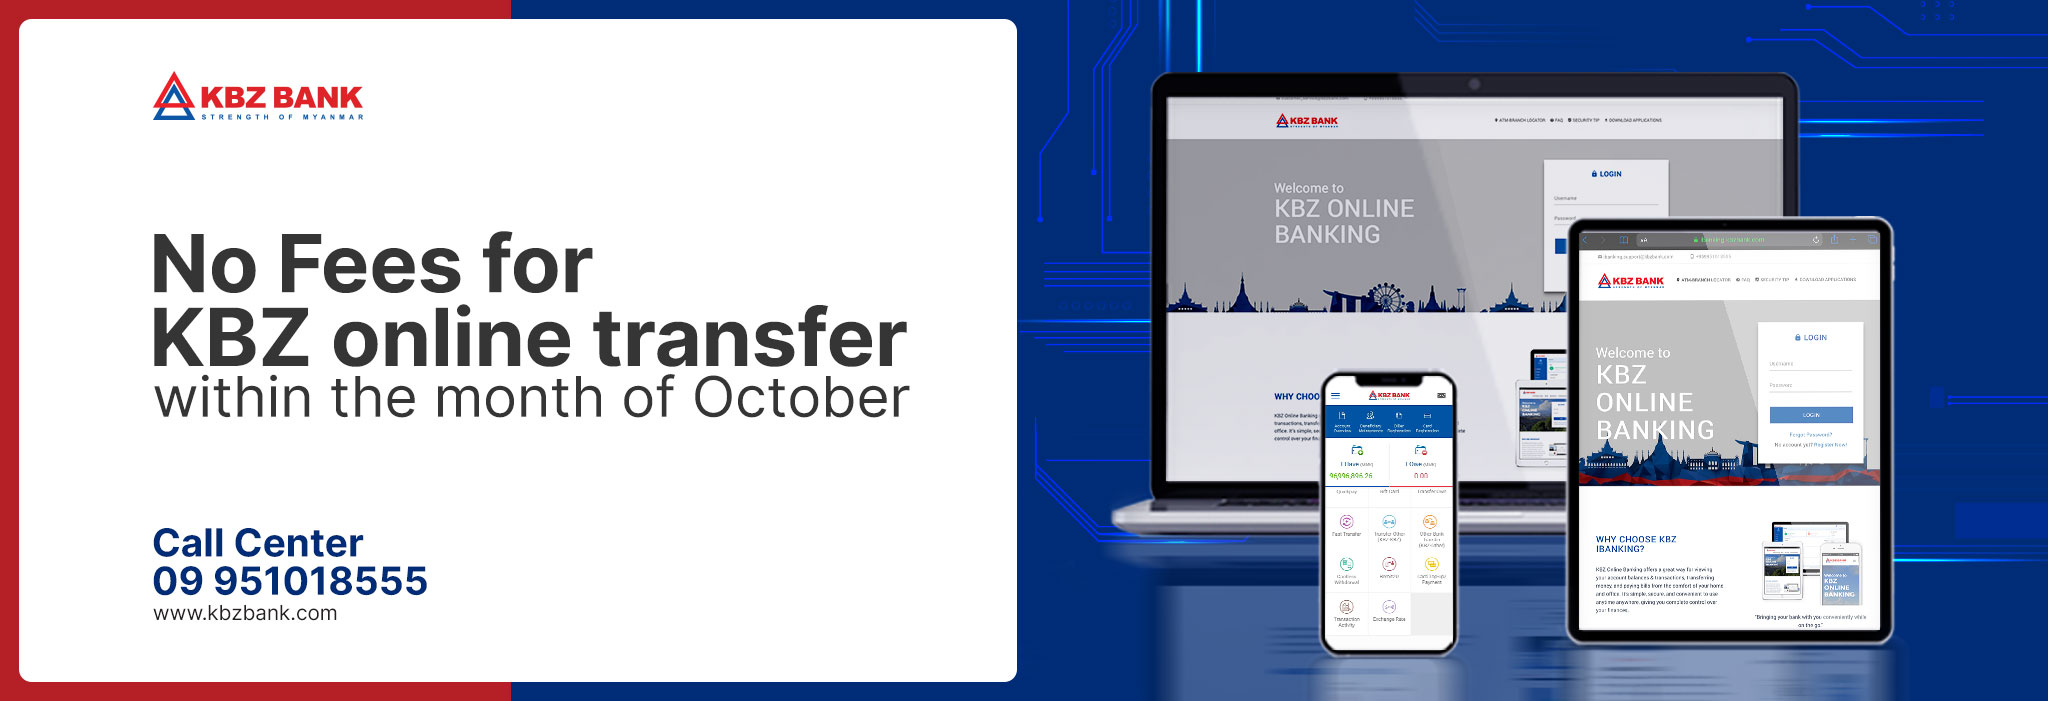 No Fees for KBZ to KBZ Transfers throughout October via KBZ i/mBanking